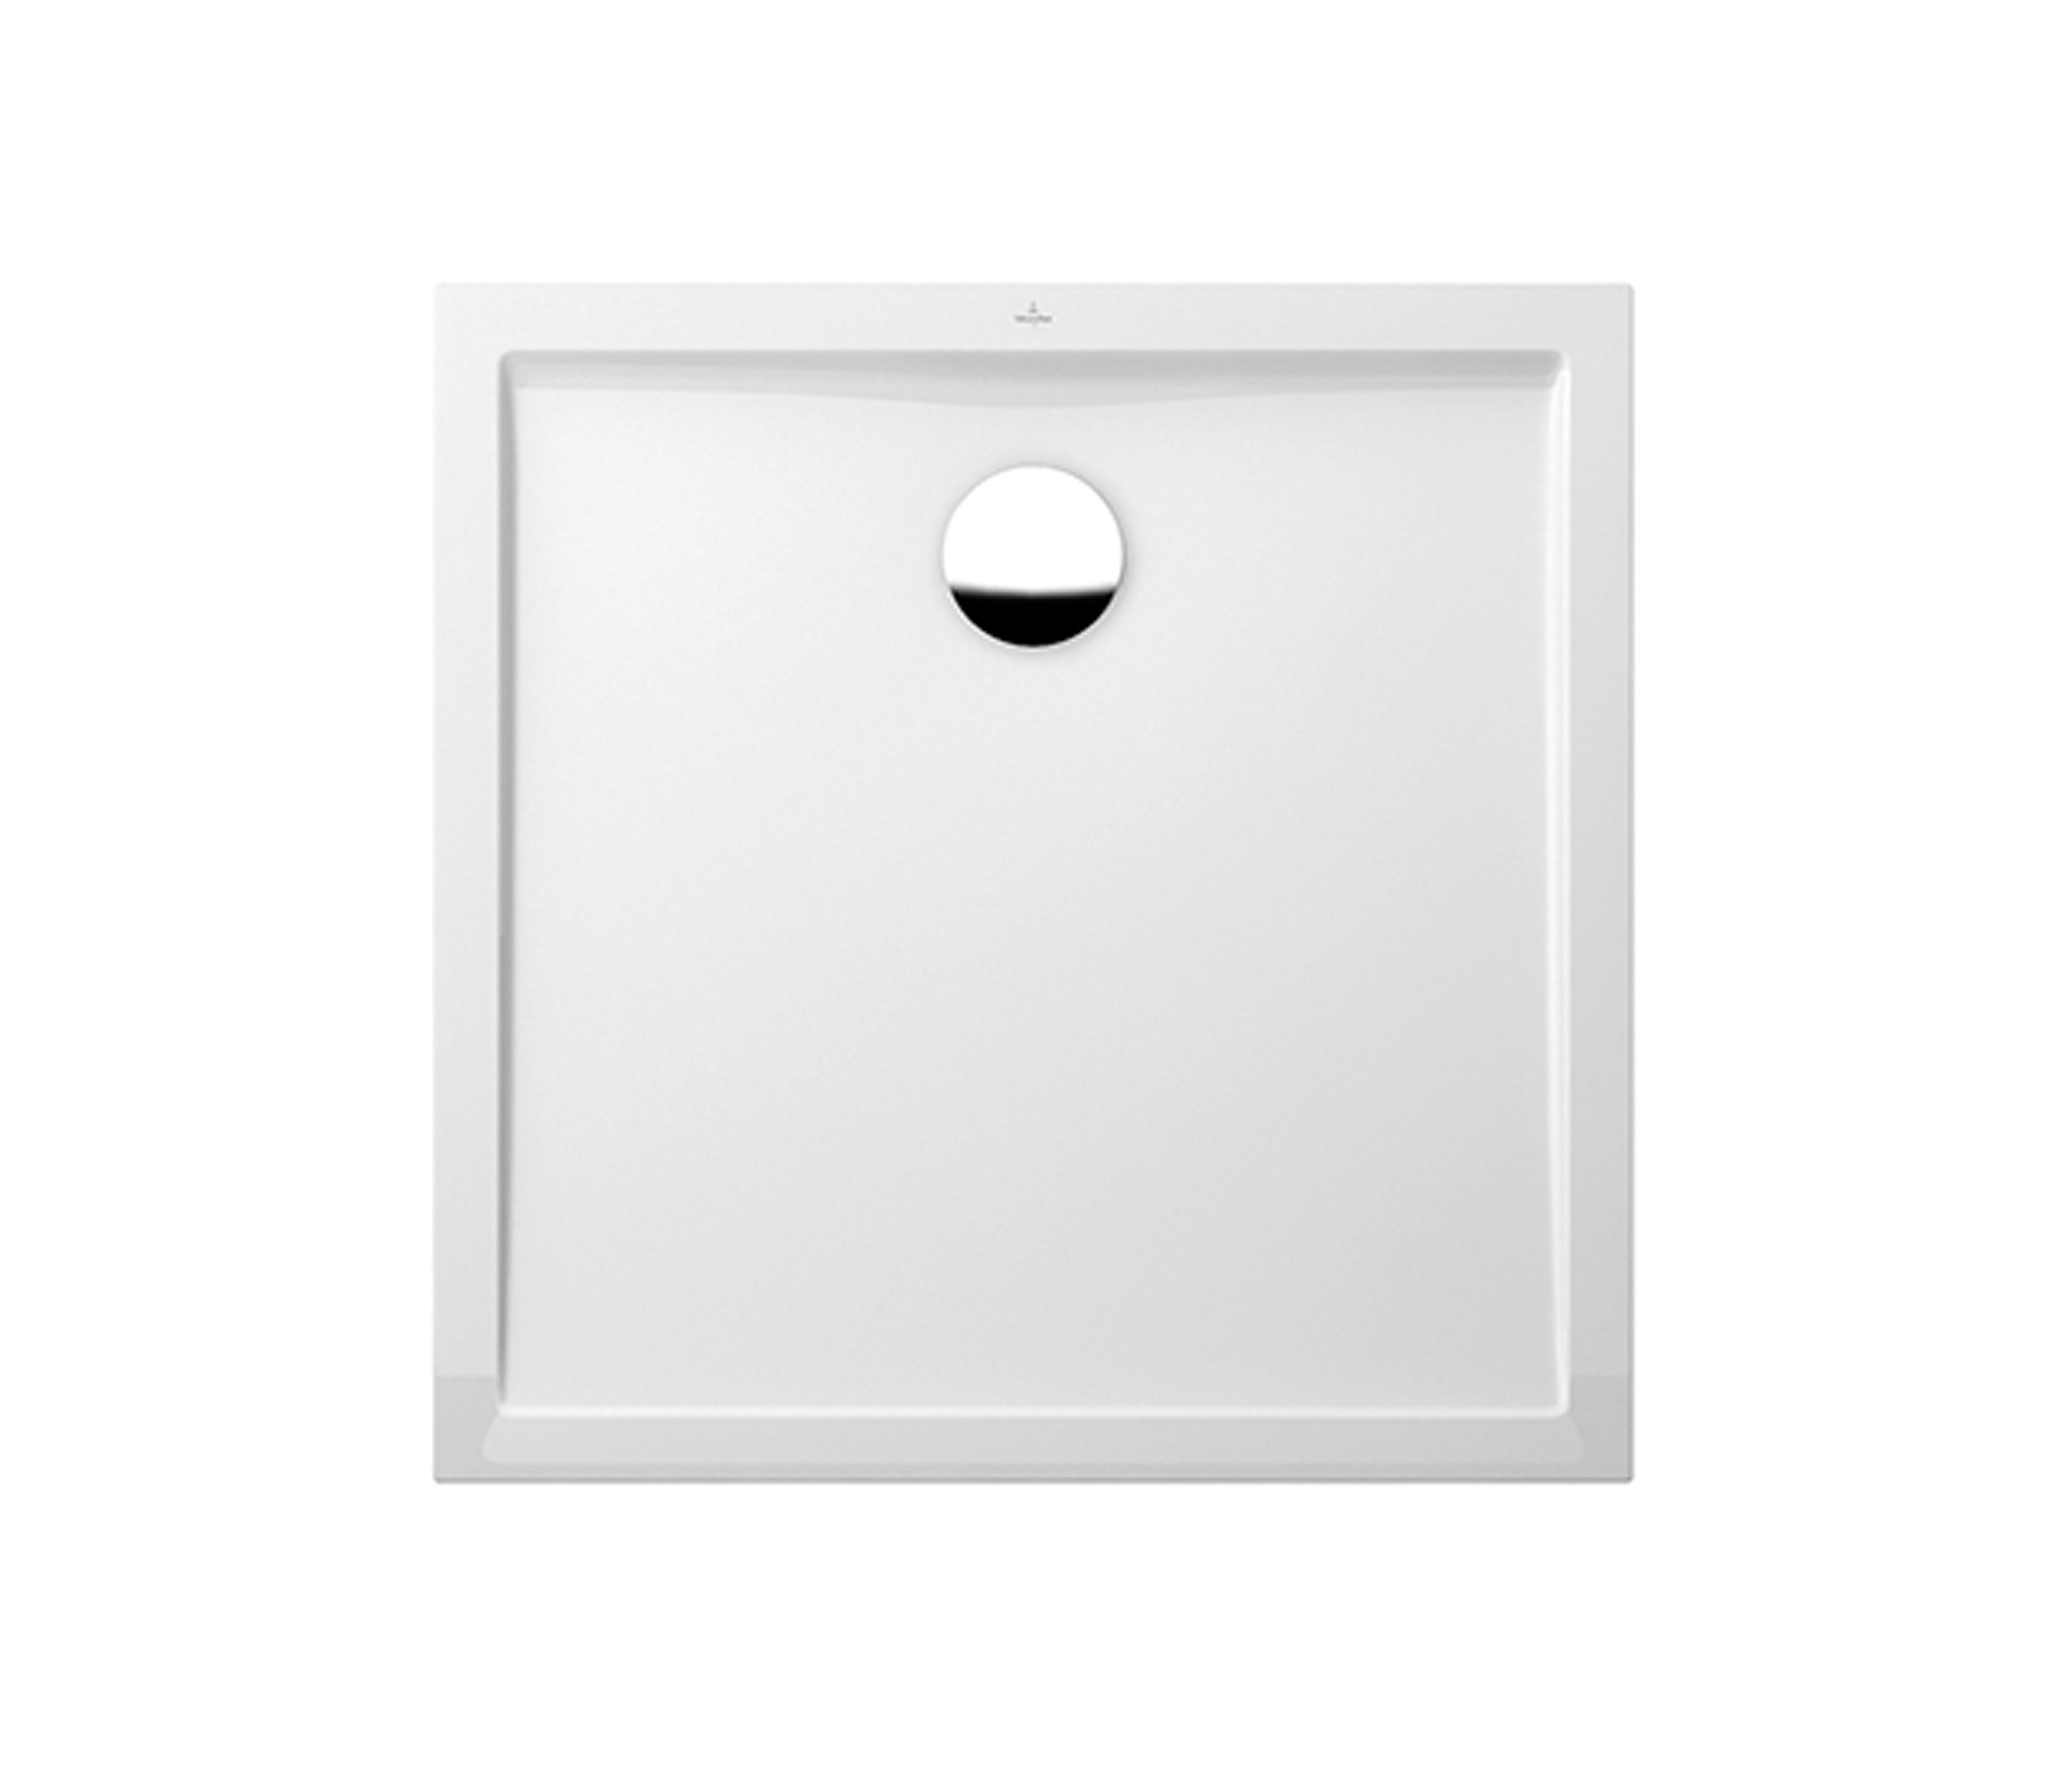 FUTURION FLAT SHOWER TRAY - Shower trays from Villeroy & Boch ...